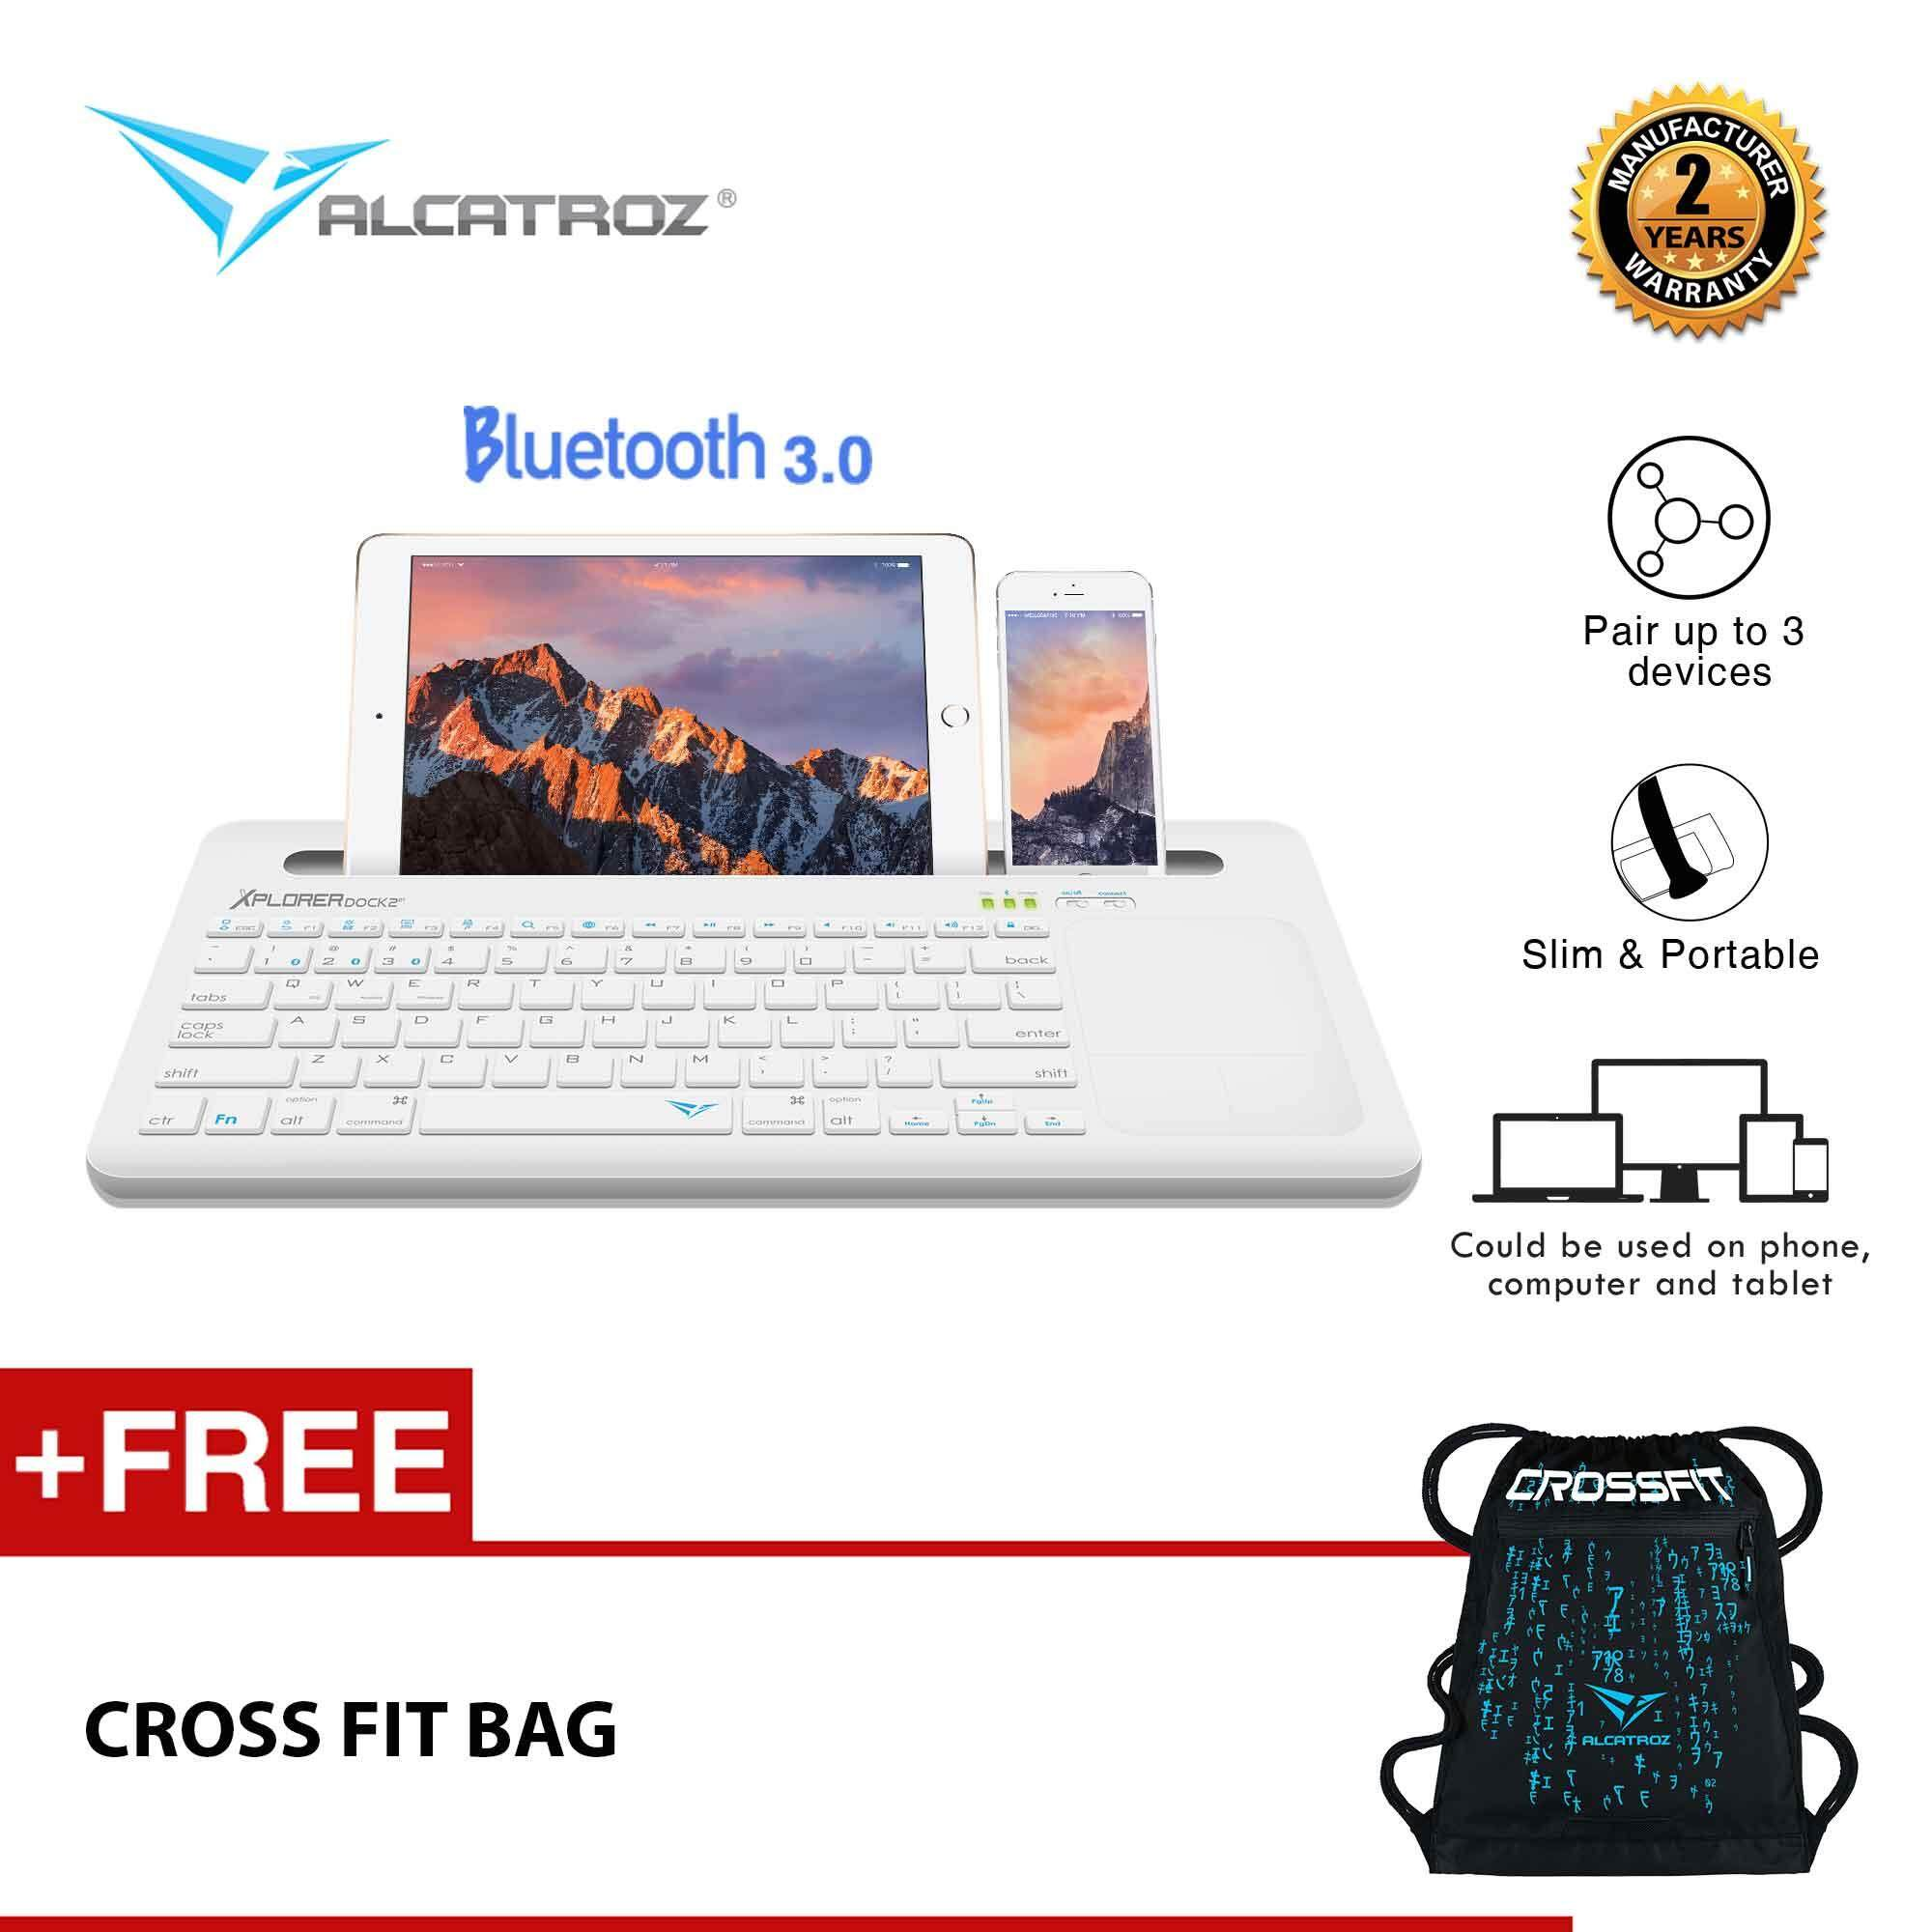 Alcatroz Xplorer Dock 2 Multi-Device Bluetooth Keyboard Free Cross Fit Bag By Alcatroz.